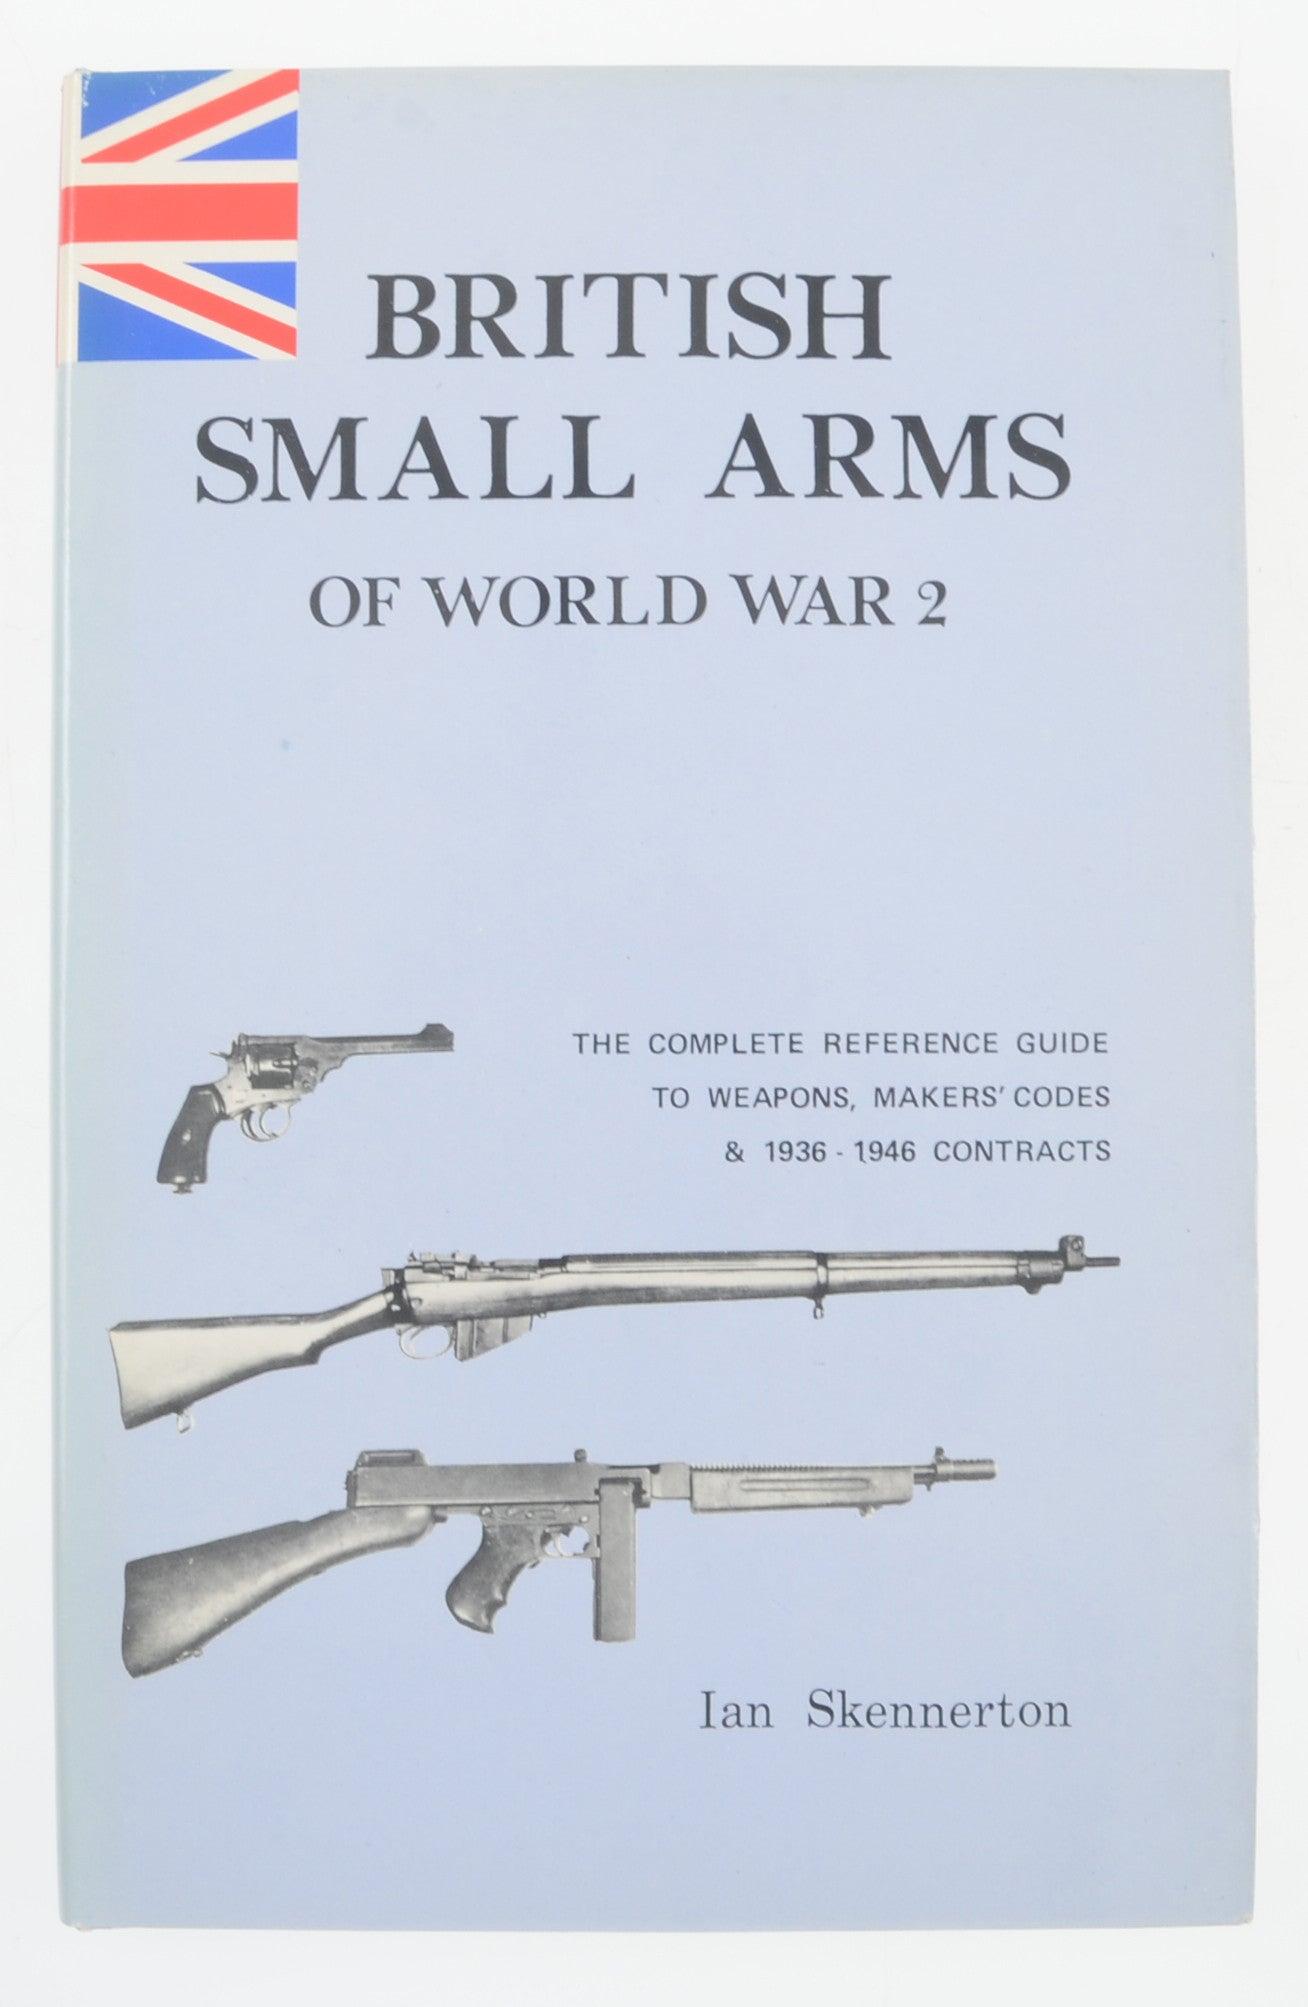 BRITISH SMALL ARMS OF WORLD WAR 2